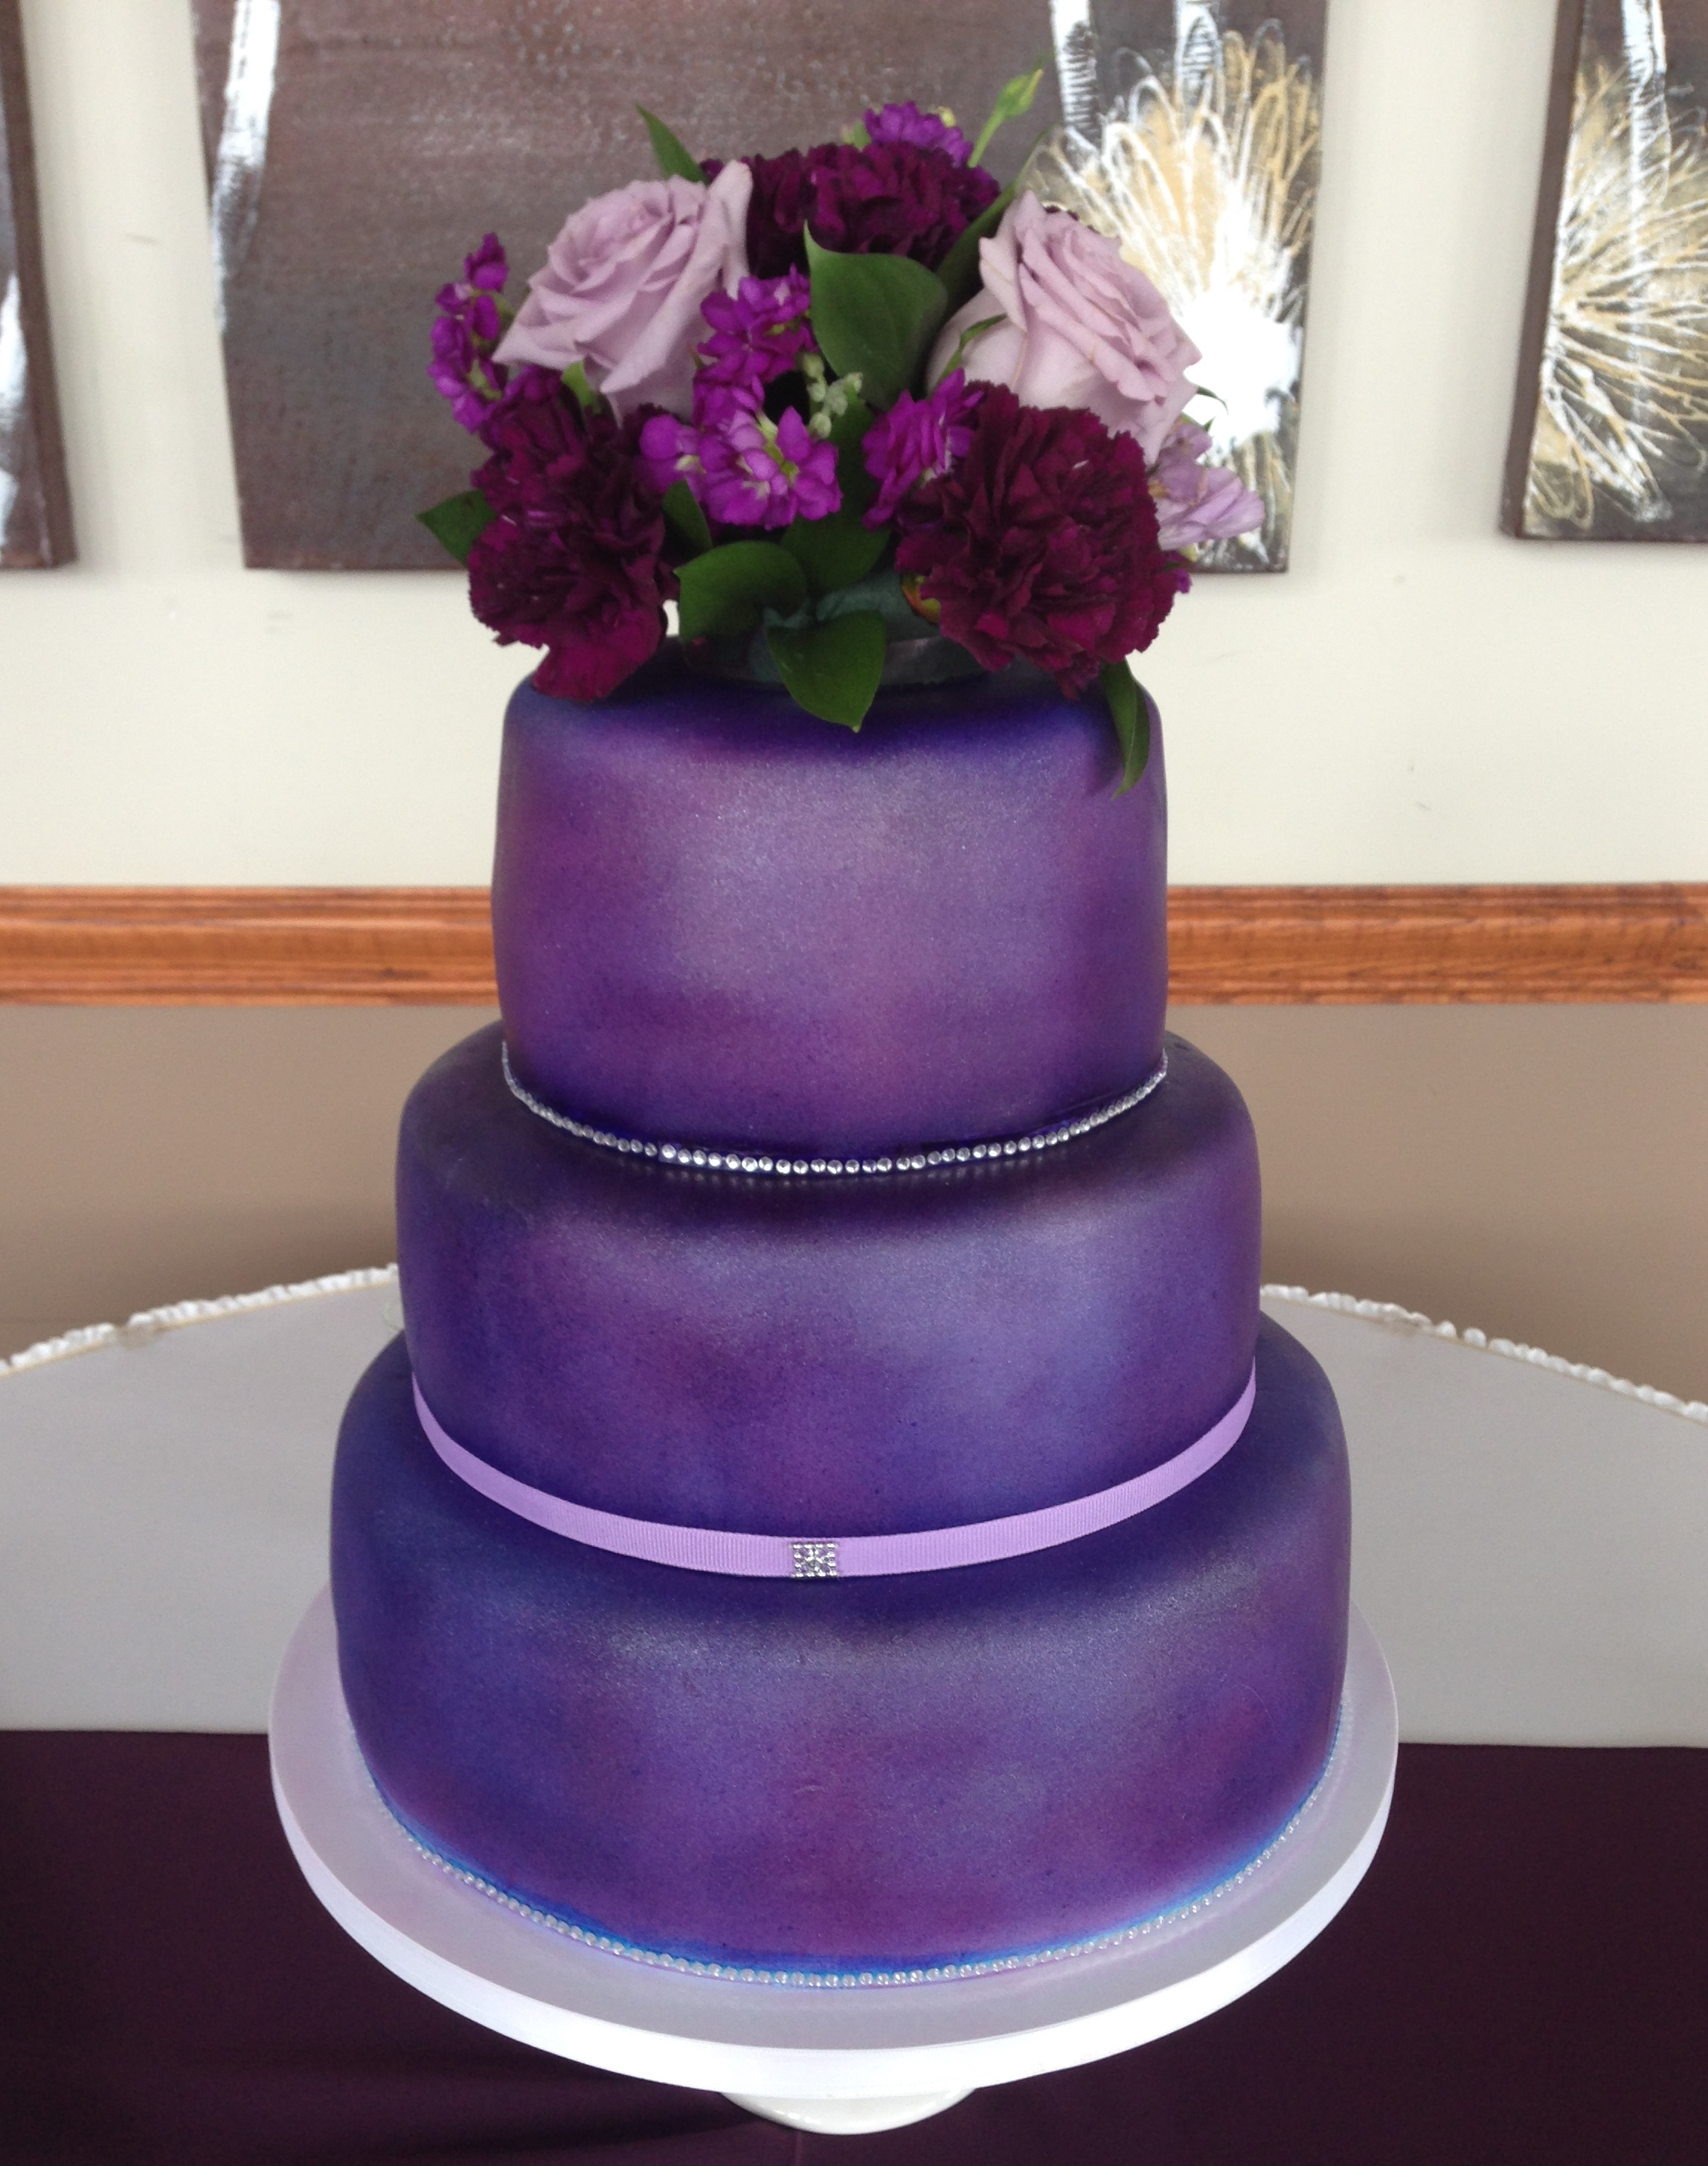 Tiered purple wedding cake w/ floral